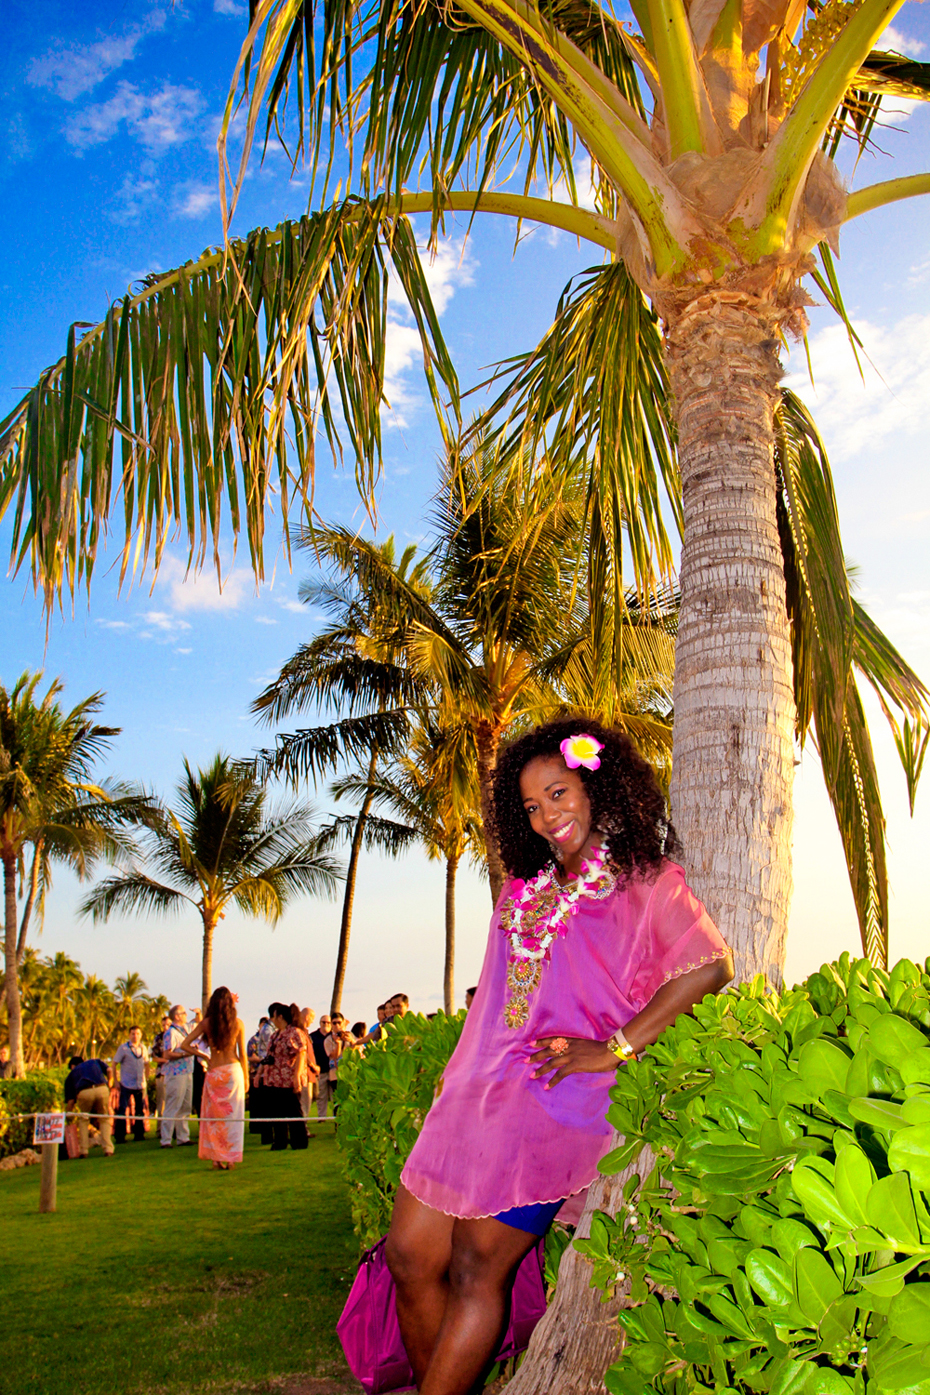 Chillin' under a palm tree at the Paradise Cove luau in Honolulu